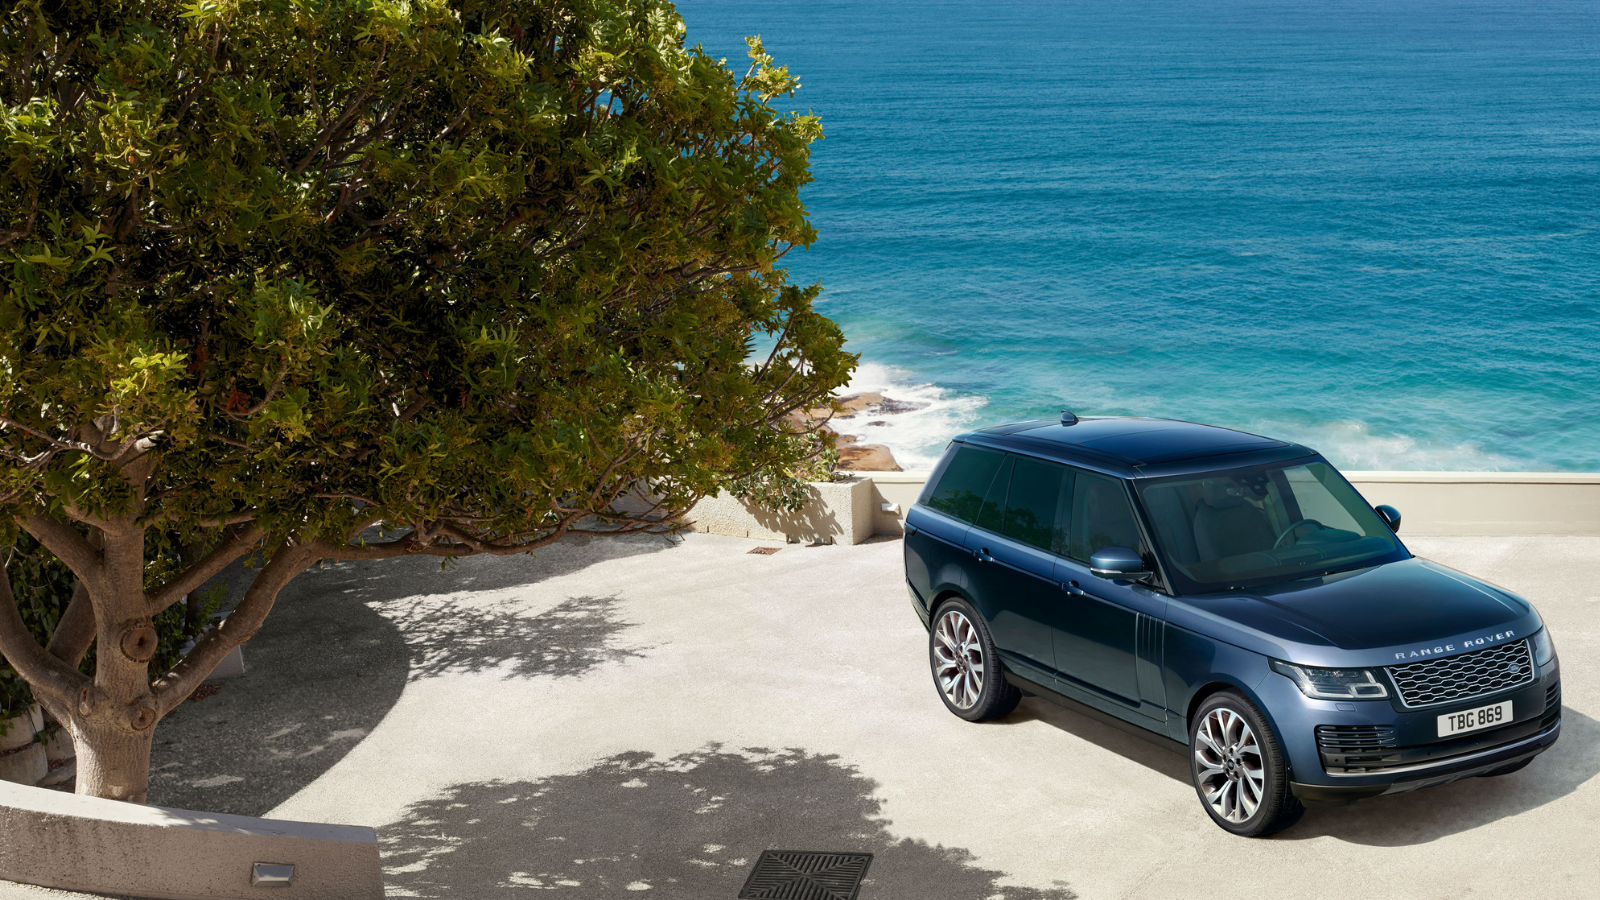 RANGE ROVER OR RANGE ROVER SPORT - WHICH SHOULD YOU CHOOSE?